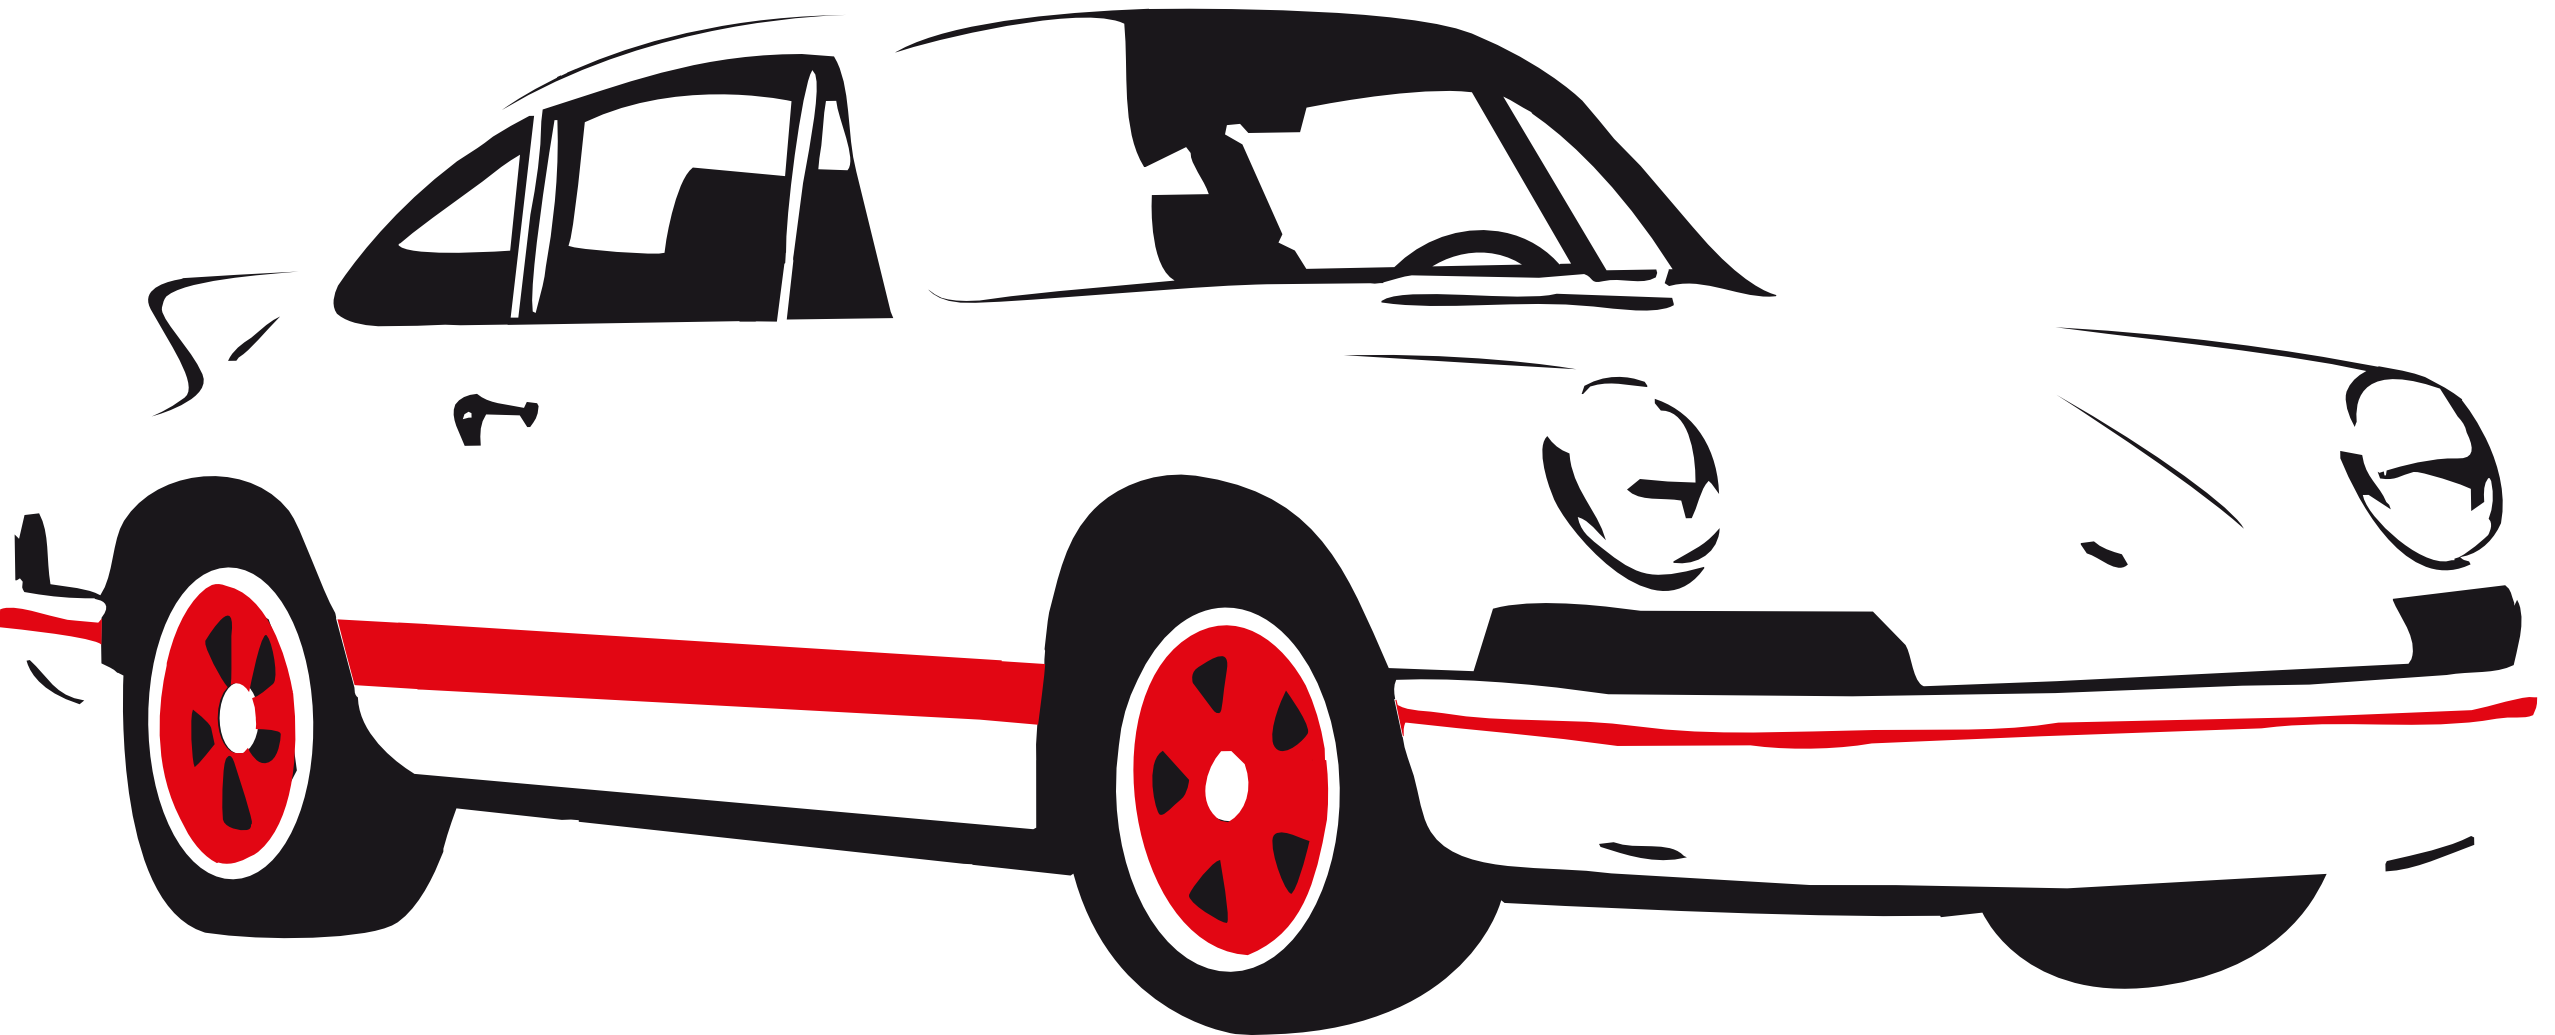 free car silhouette at getdrawings com free for personal use free rh getdrawings com